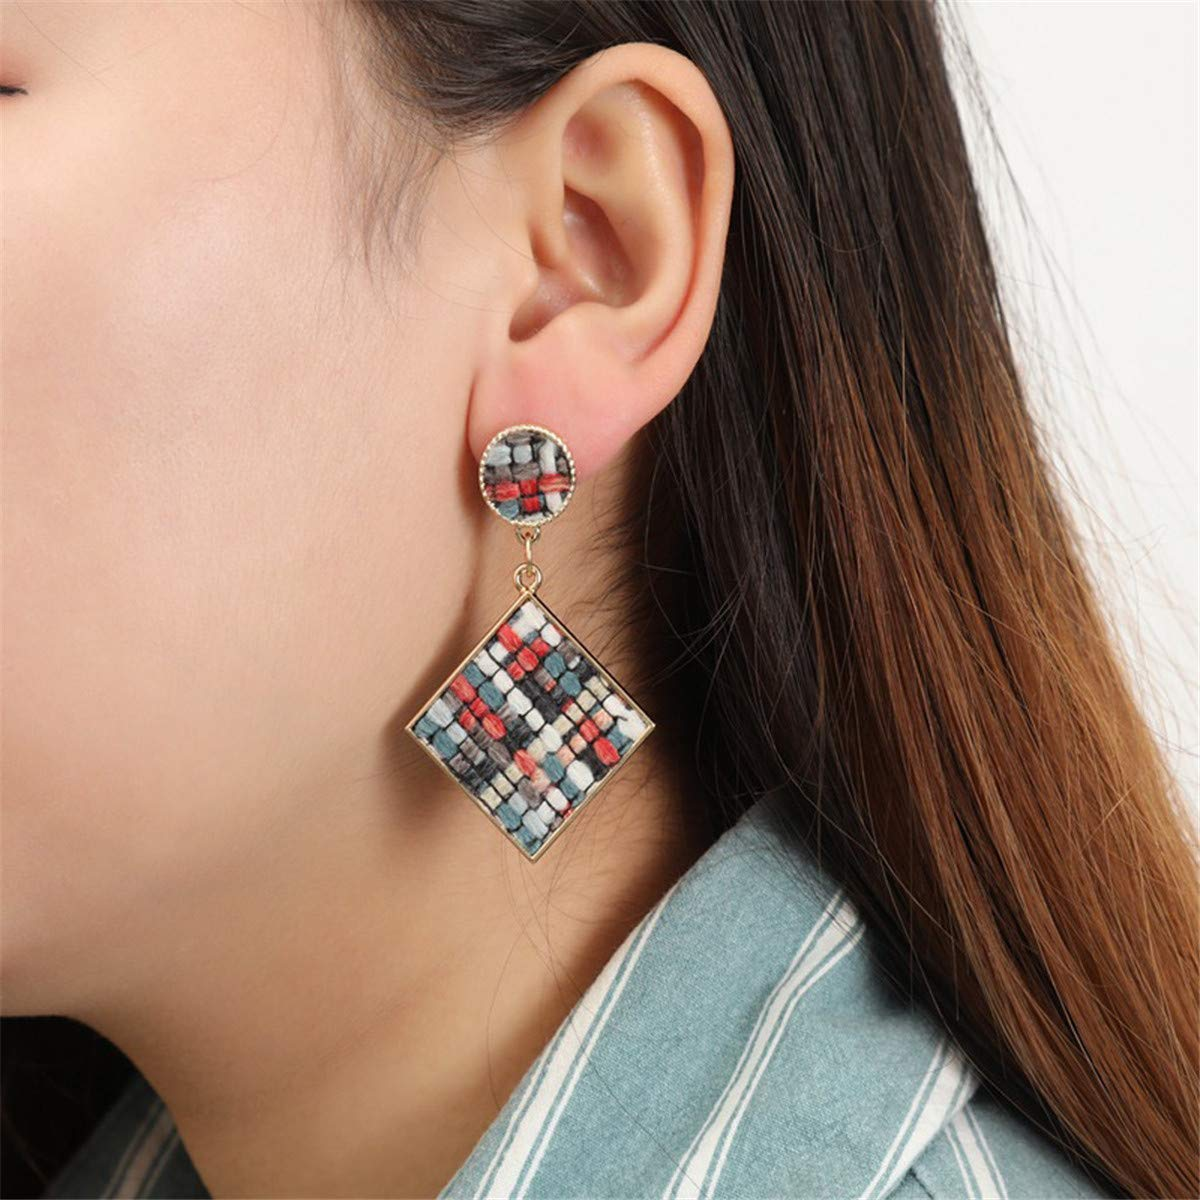 Ear Cuffs Hoop Fzitimx Bohemian Europe and The United States Ethnic Style Hollow Beaded Tassel Earrings